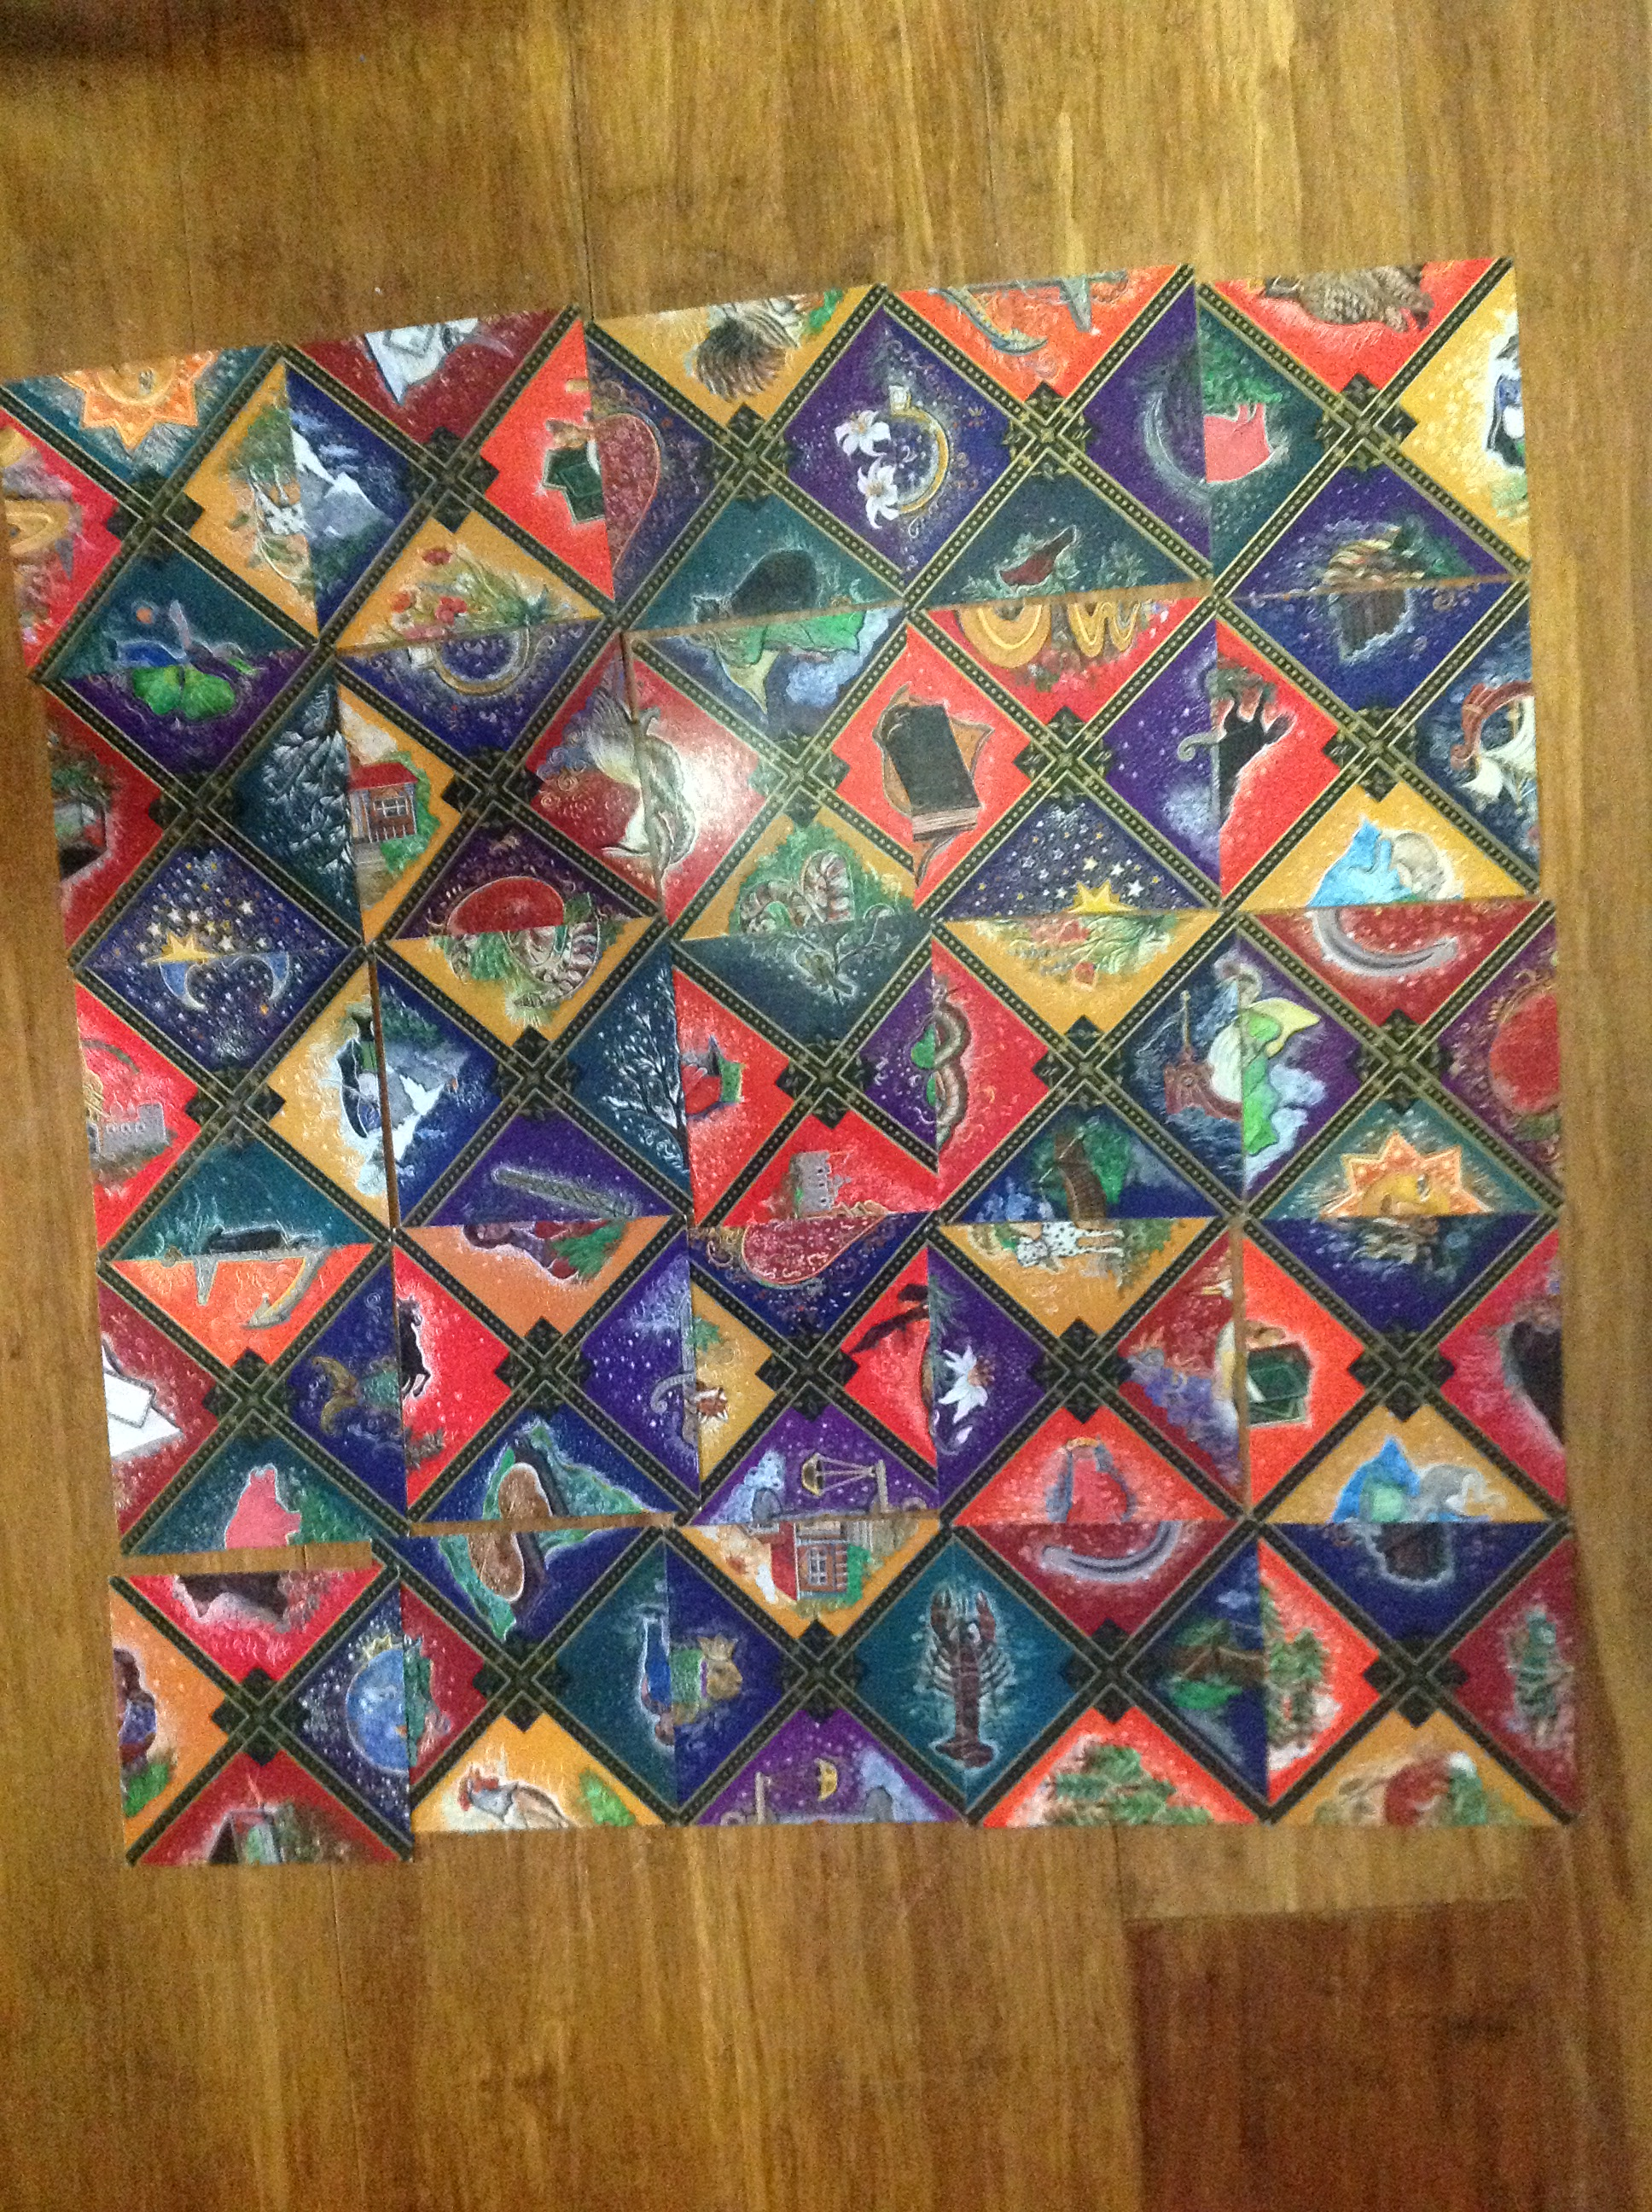 Russian Gypsy Fortune Telling Cards by Sveltana